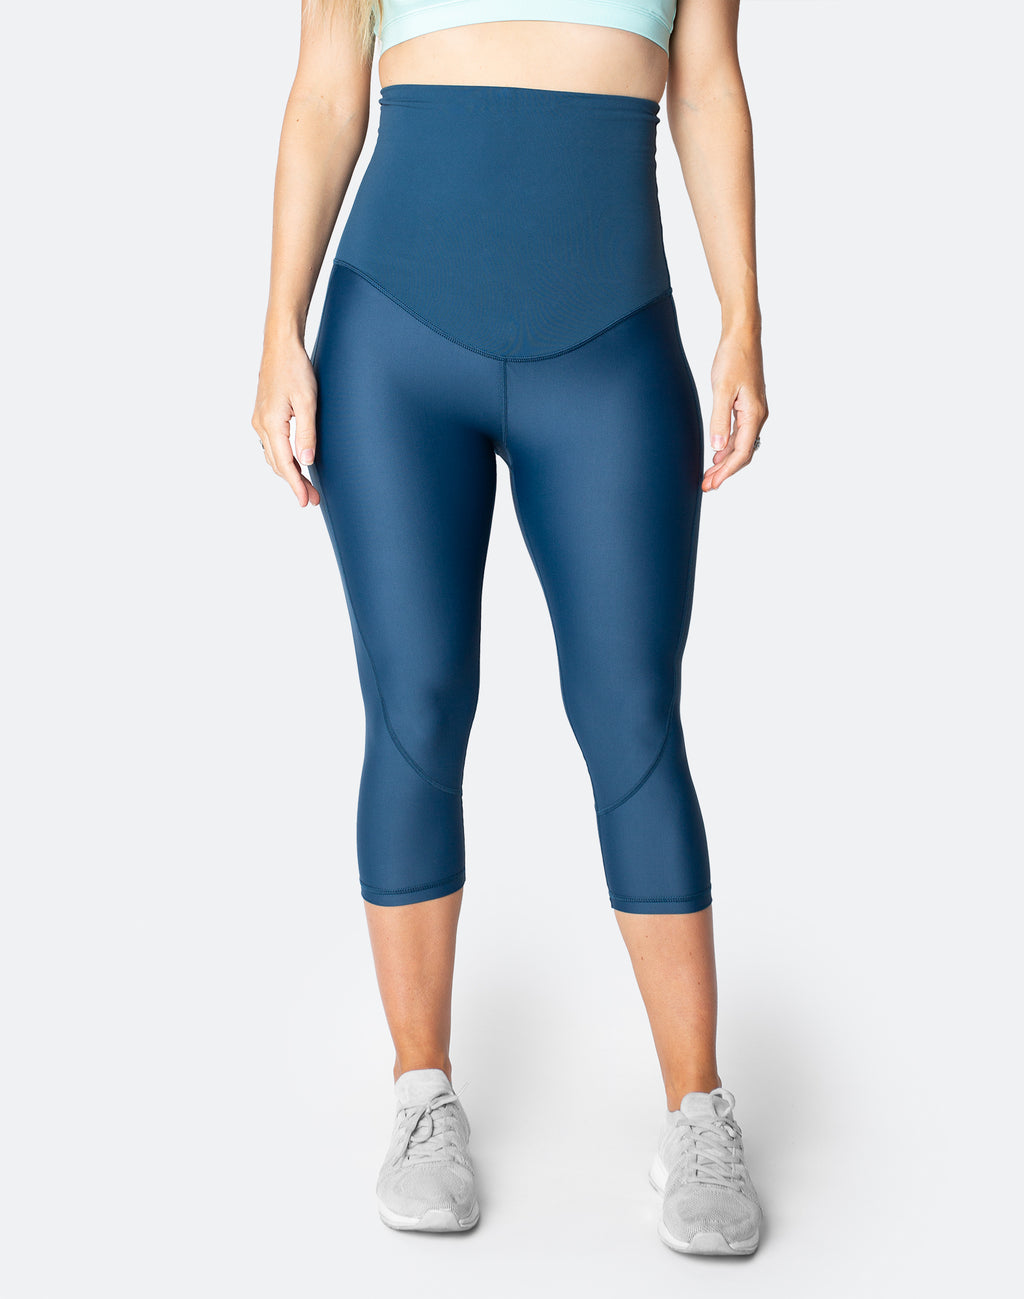 Maternity Leggings - Classic Aspen